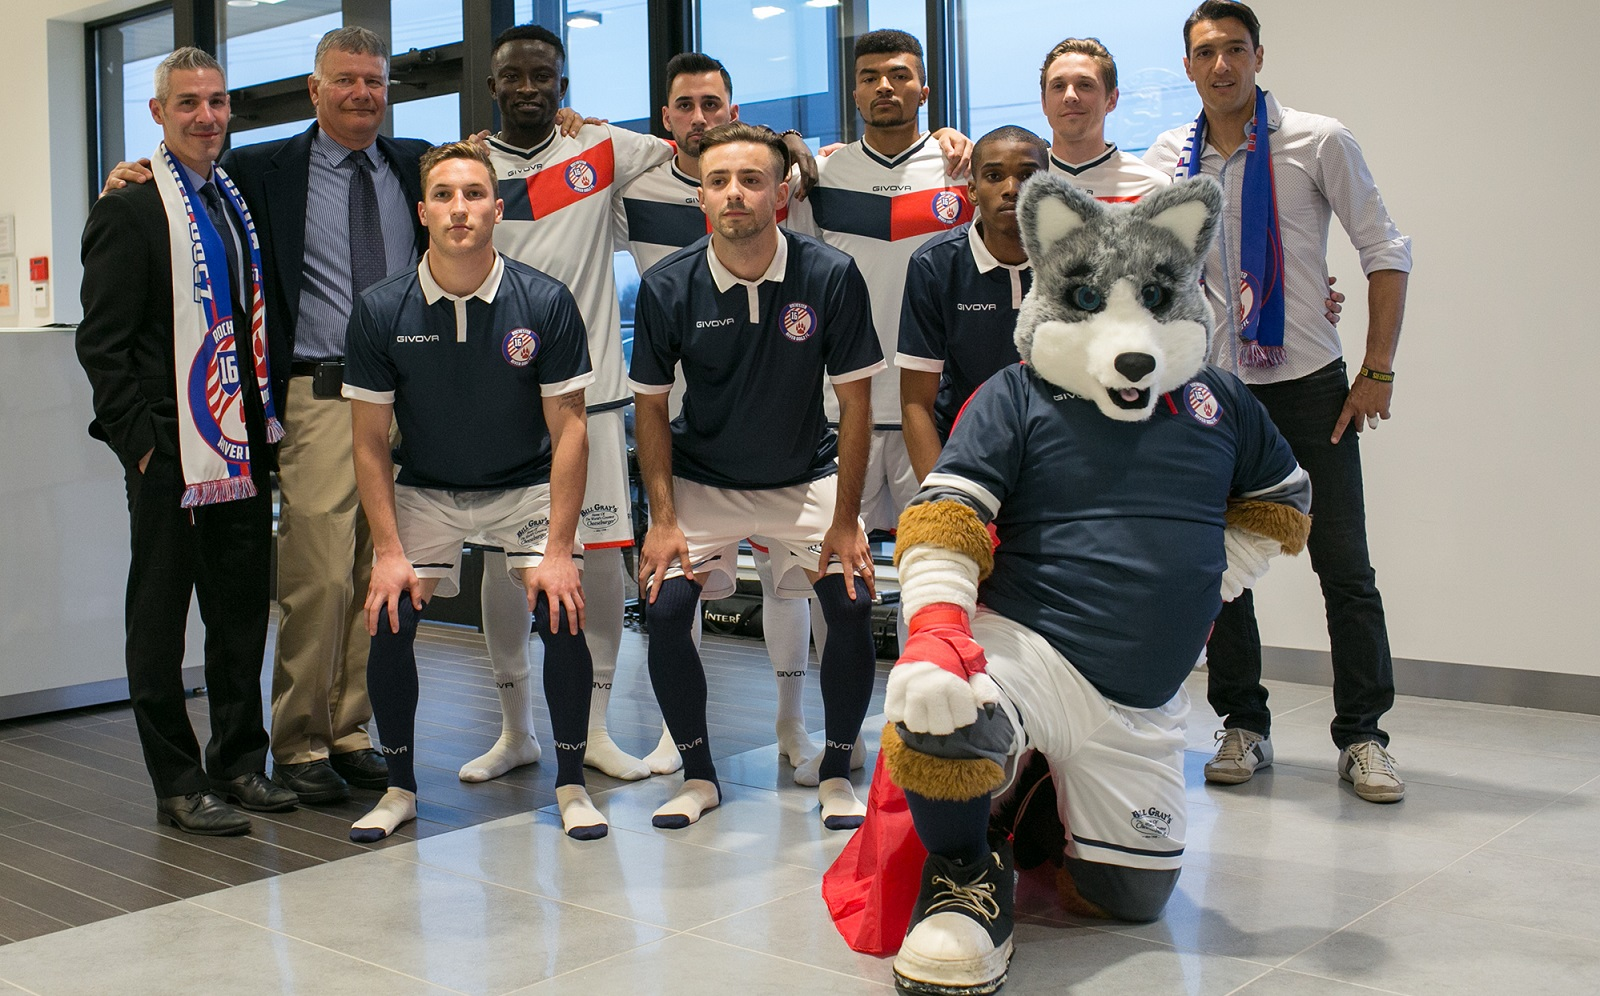 The Rochester River Dogz showed off their new kits in April. (Credit: Mike Bradley Photography)